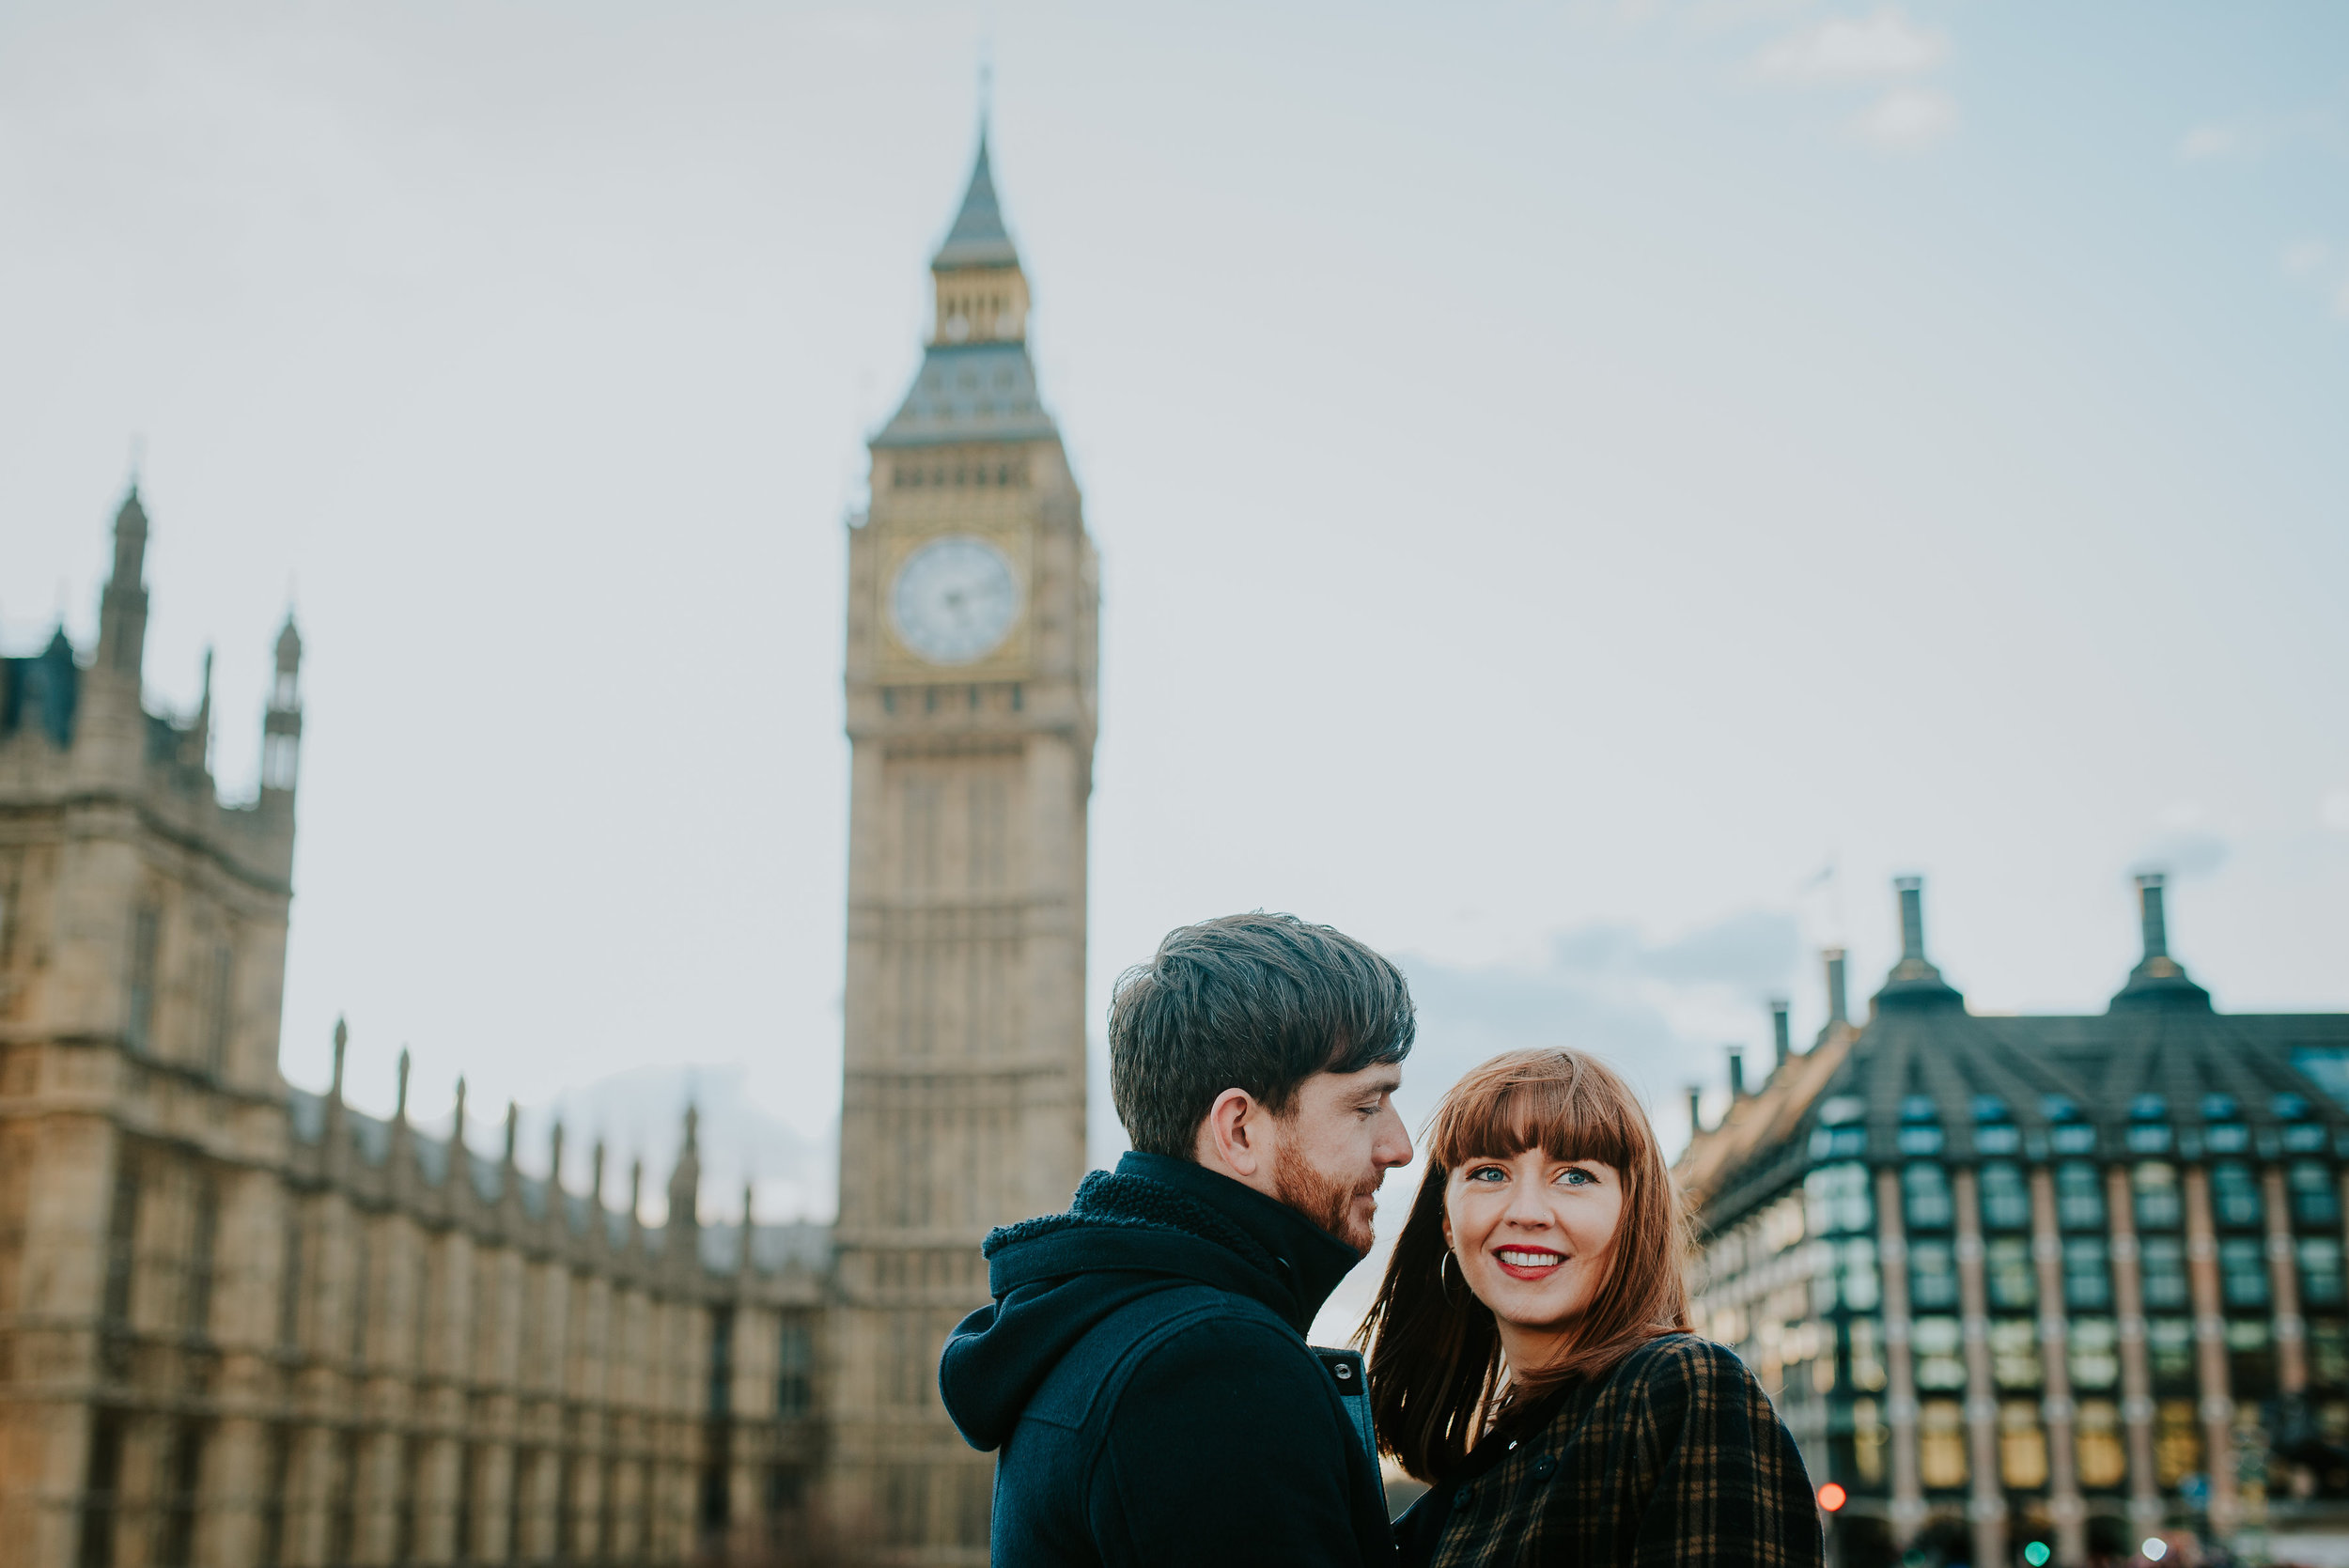 Couple in love in front of Big Ben London